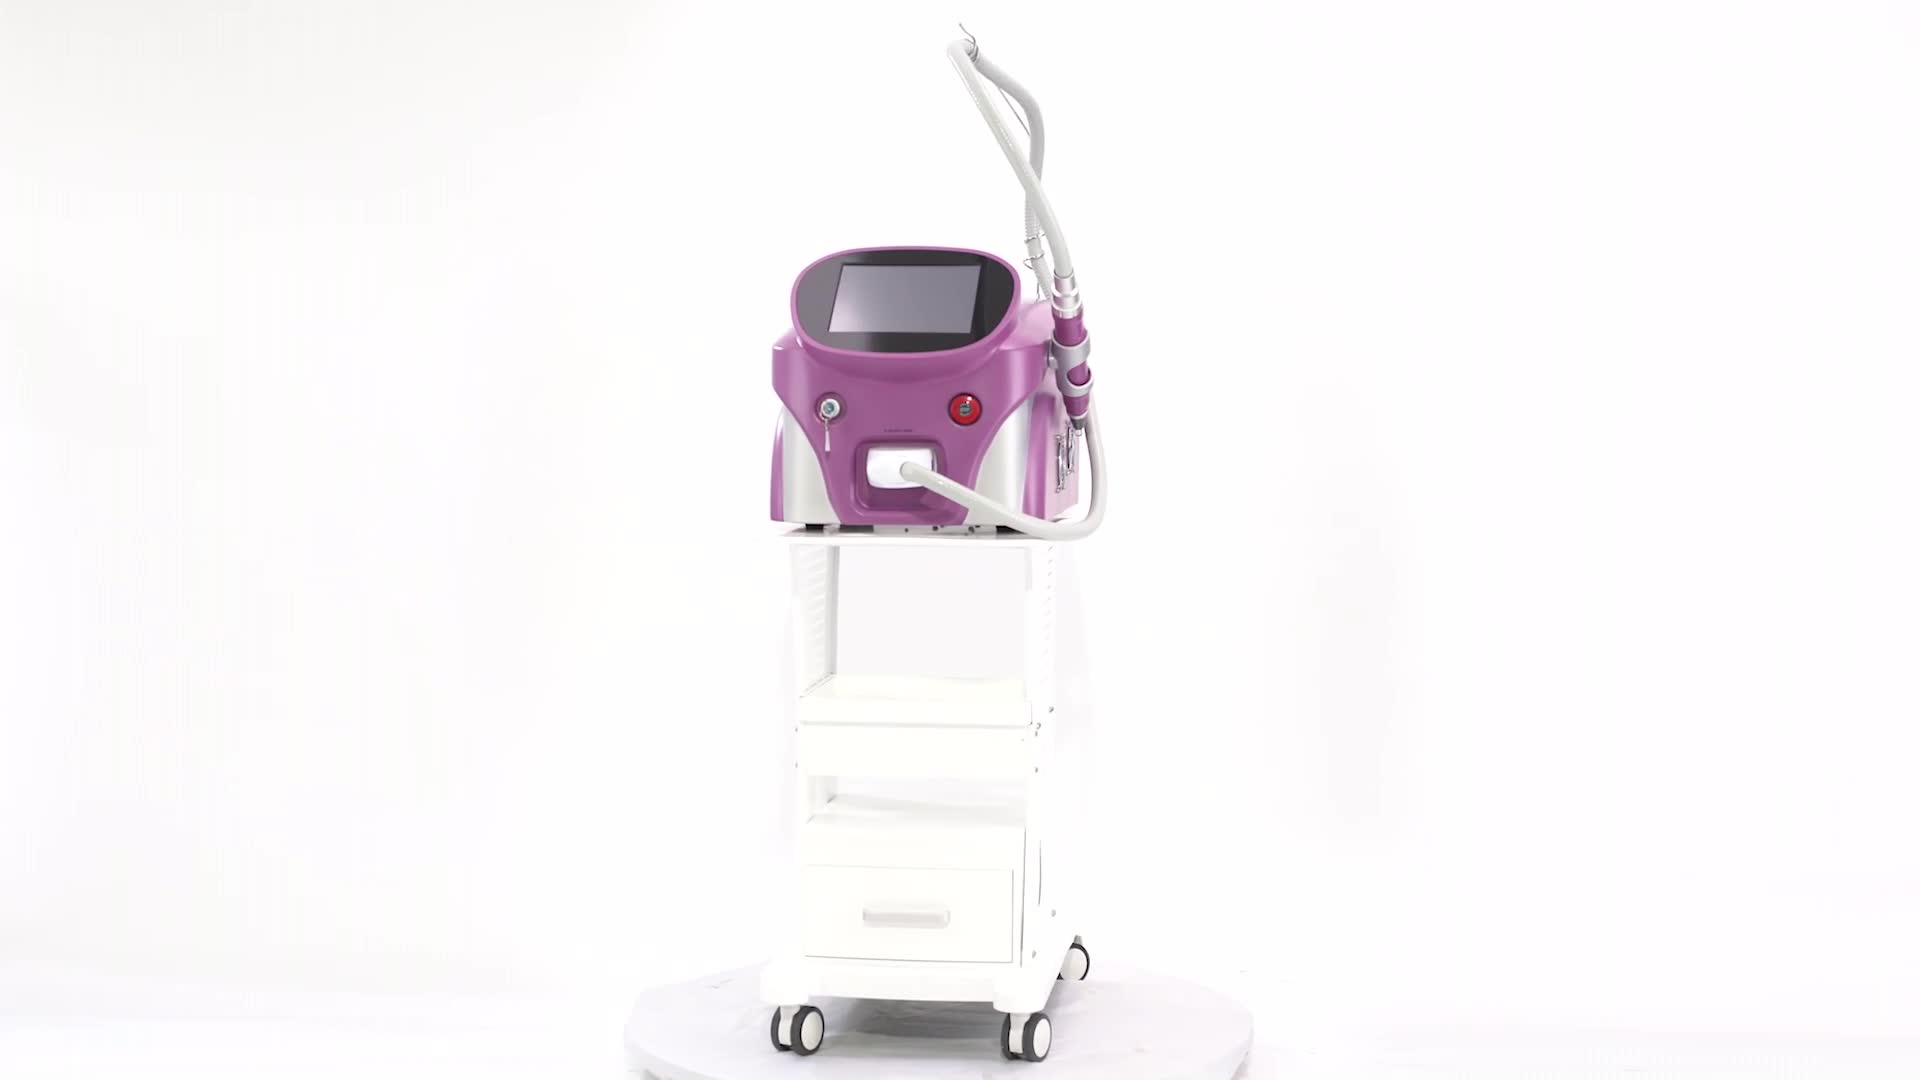 Portable Picosecond Q Switch Nd Yag Laser Tattoo Removal